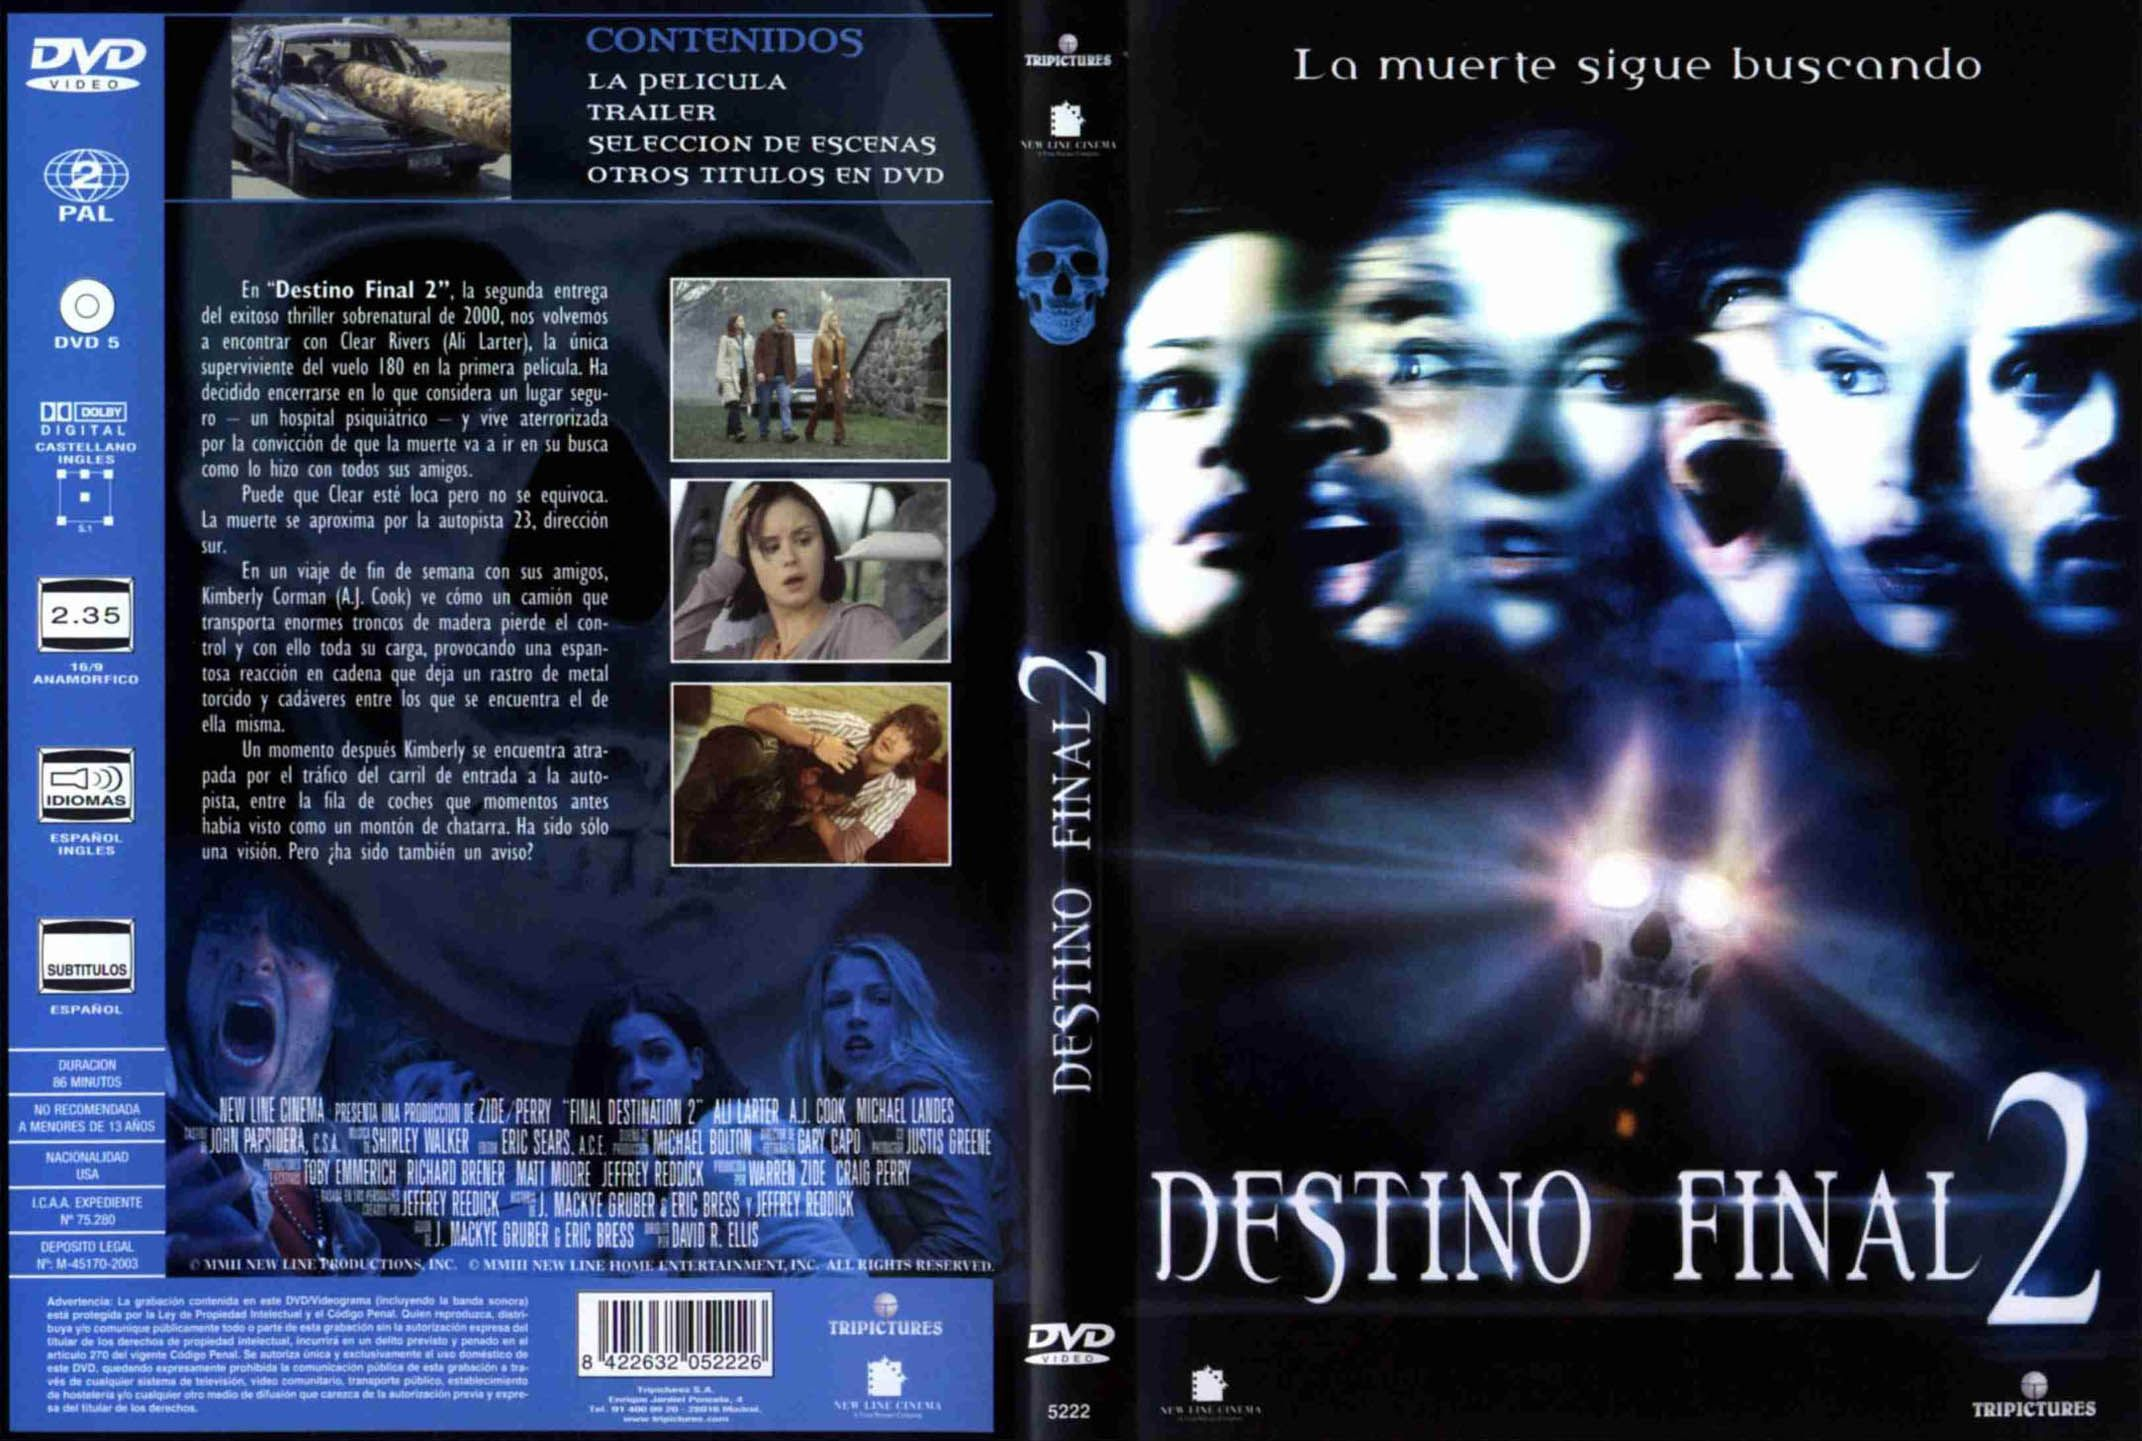 Destino Final 2 Poster Movie Posters Movies